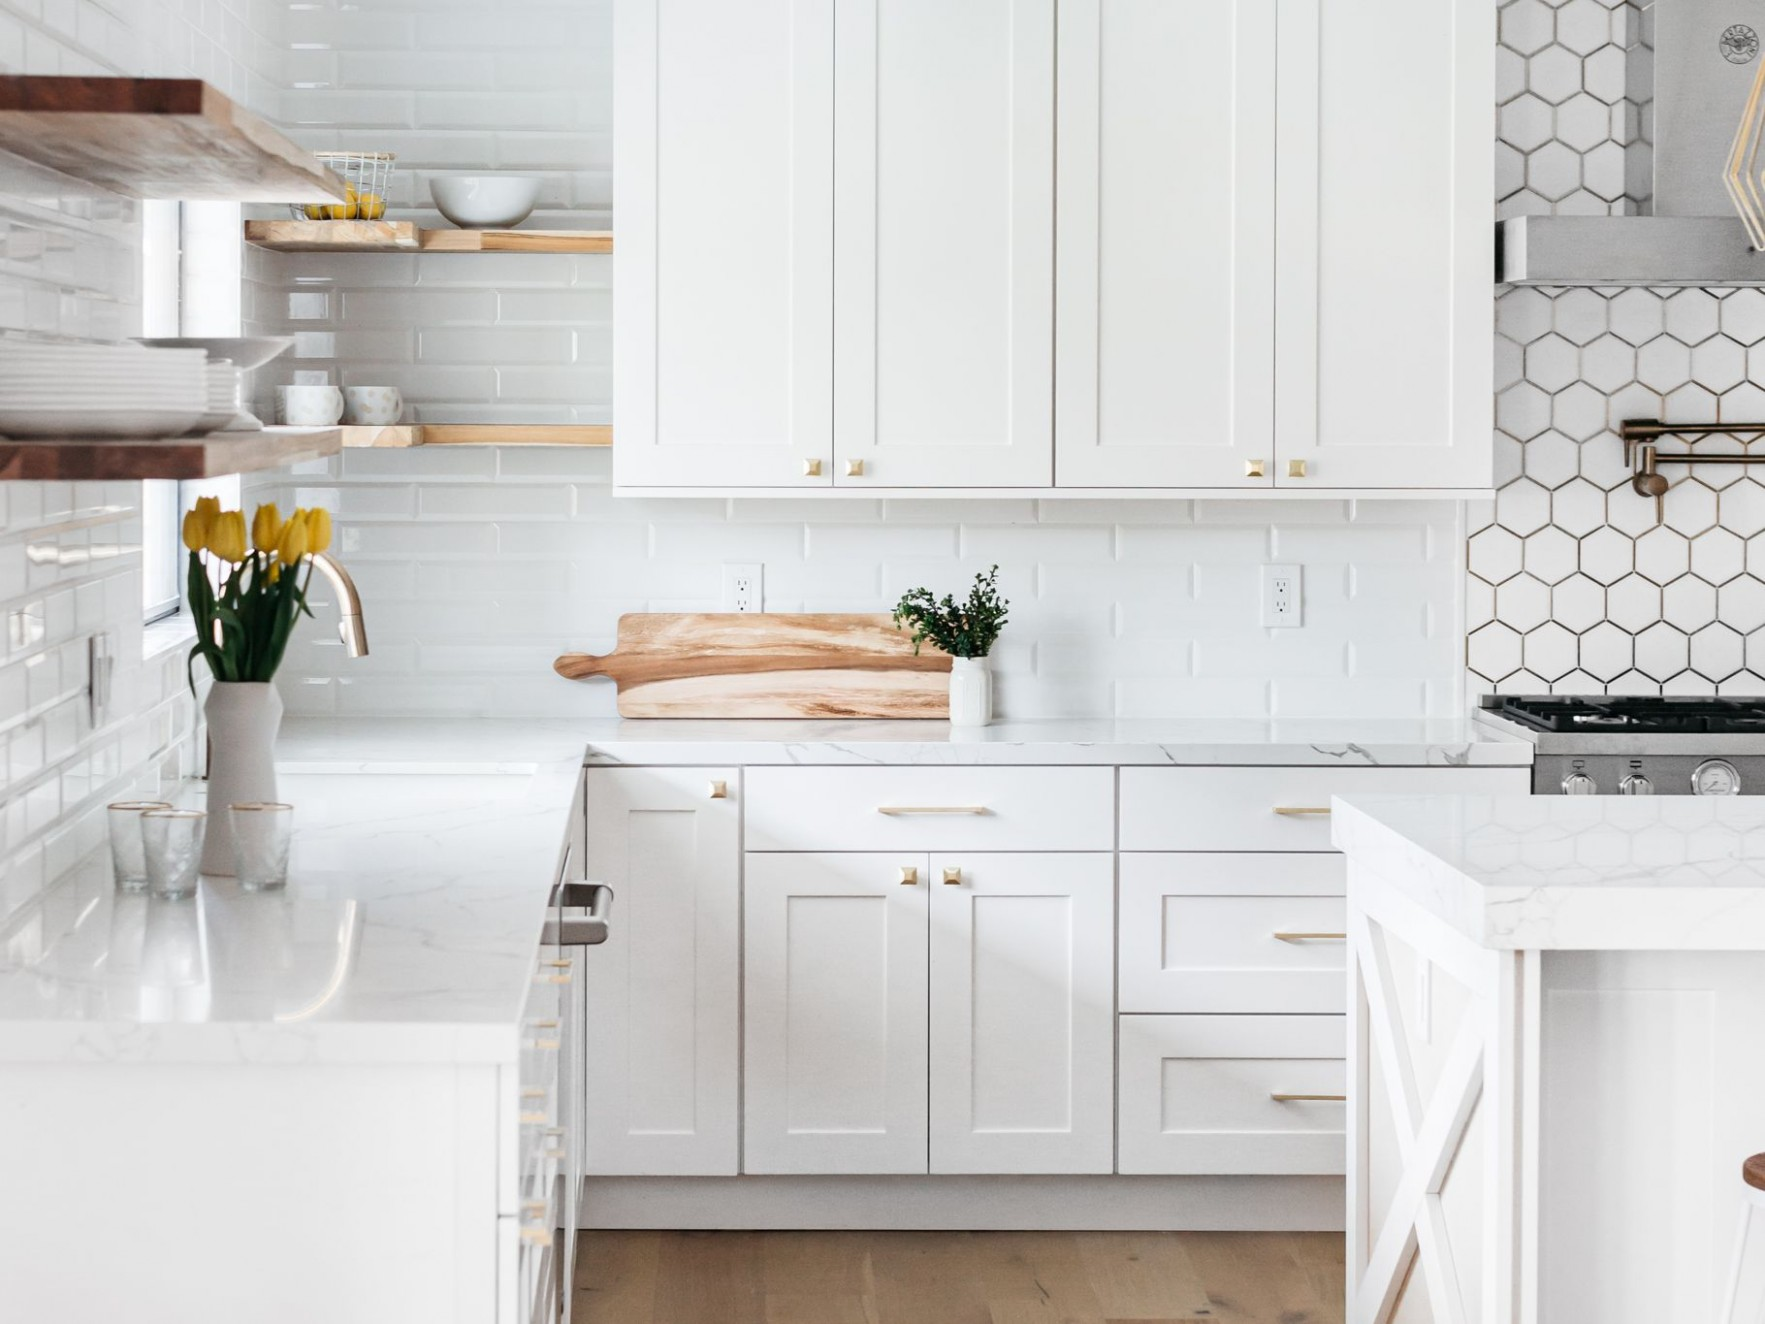 Guide to Standard Kitchen Cabinet Dimensions - Kitchen Cabinets Upper Size